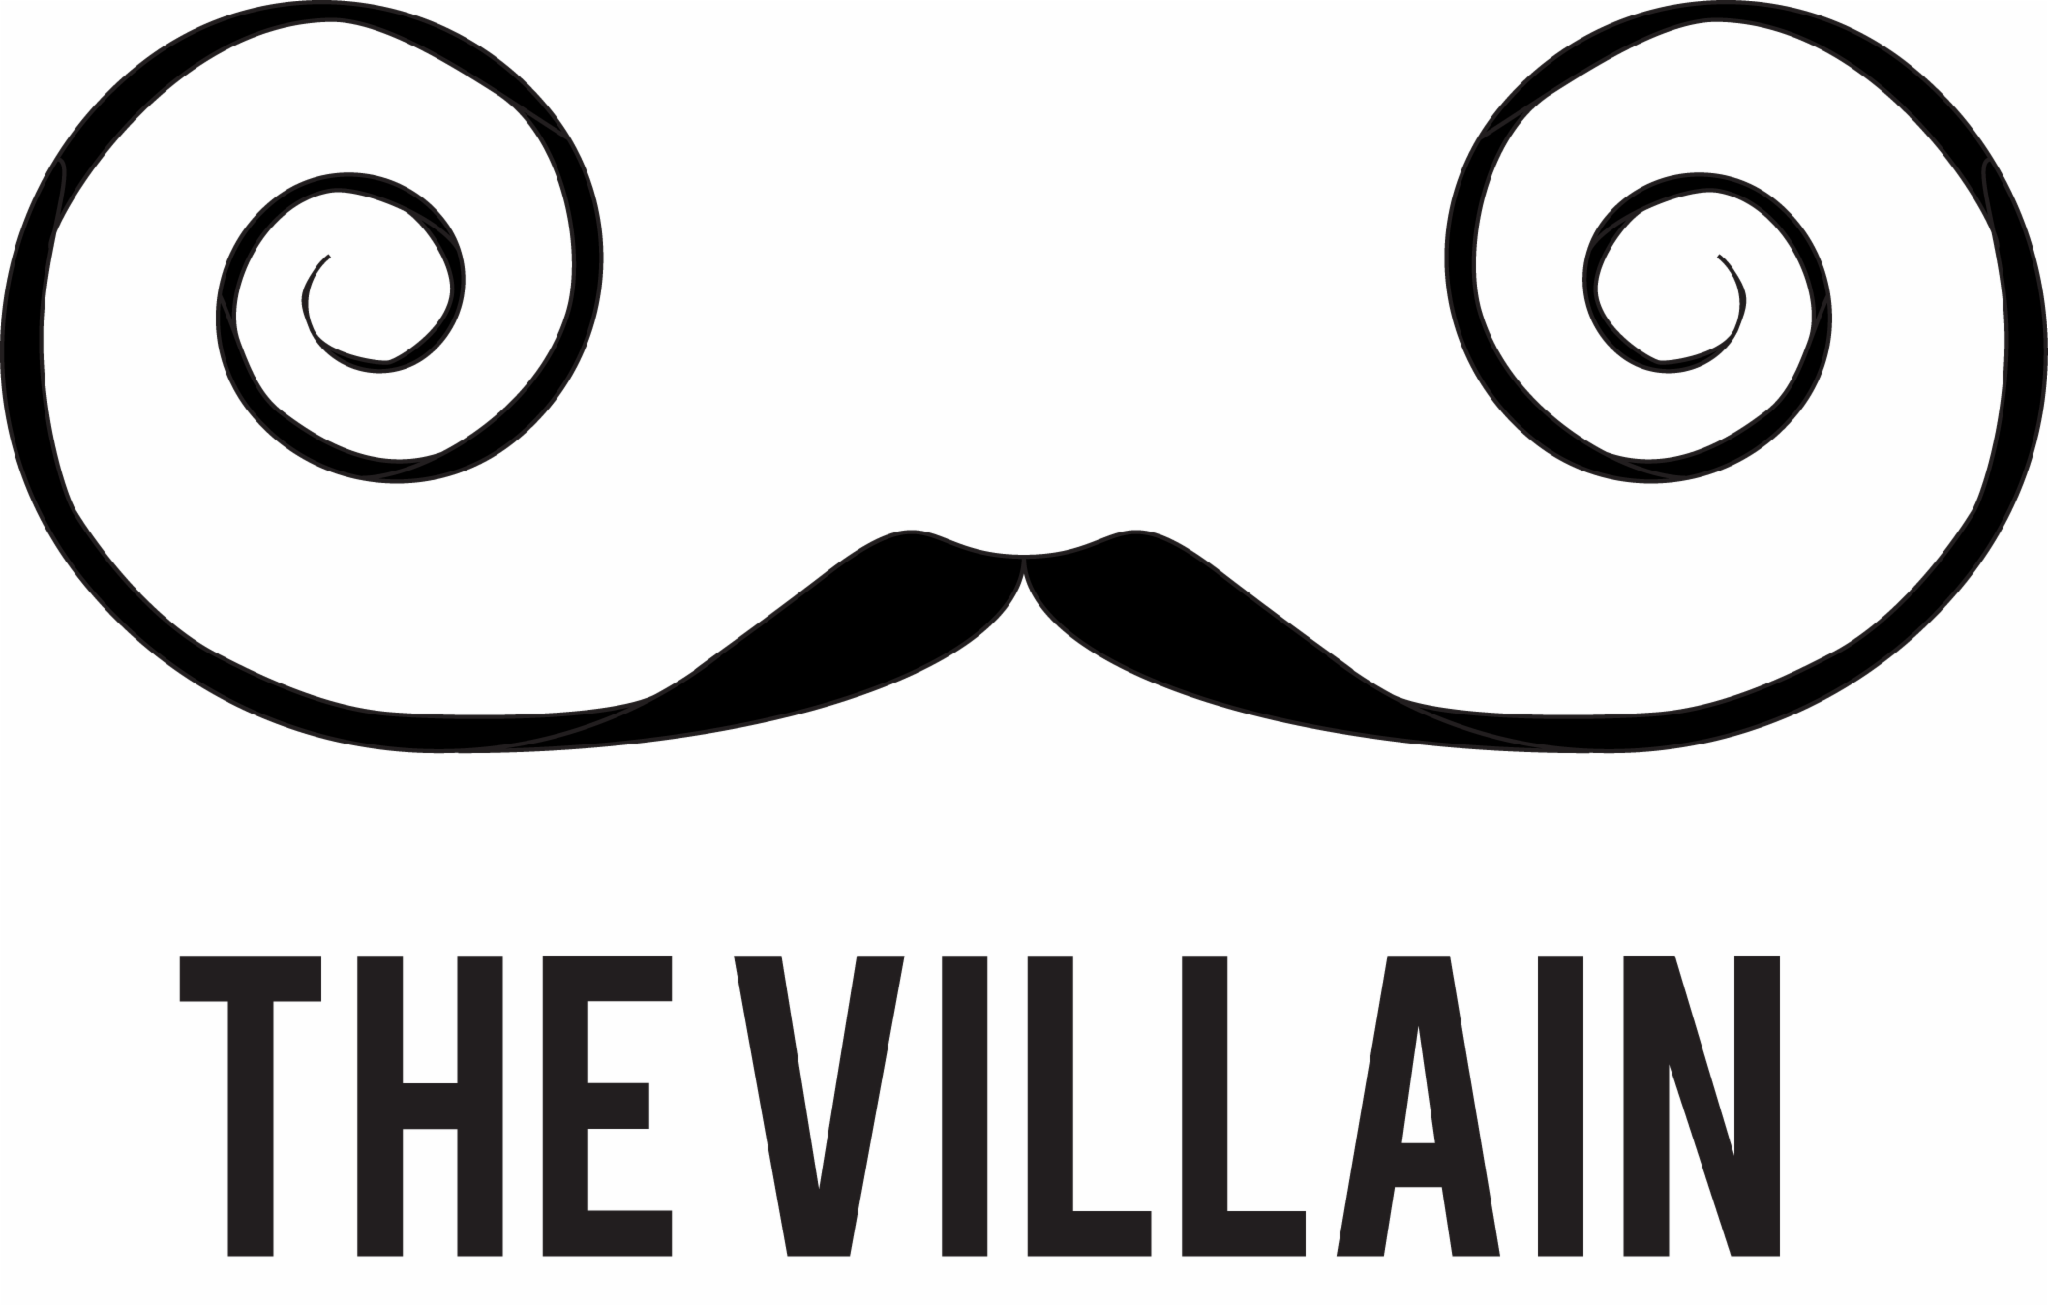 If you were a villain, what kind of villain do you think that you would be?